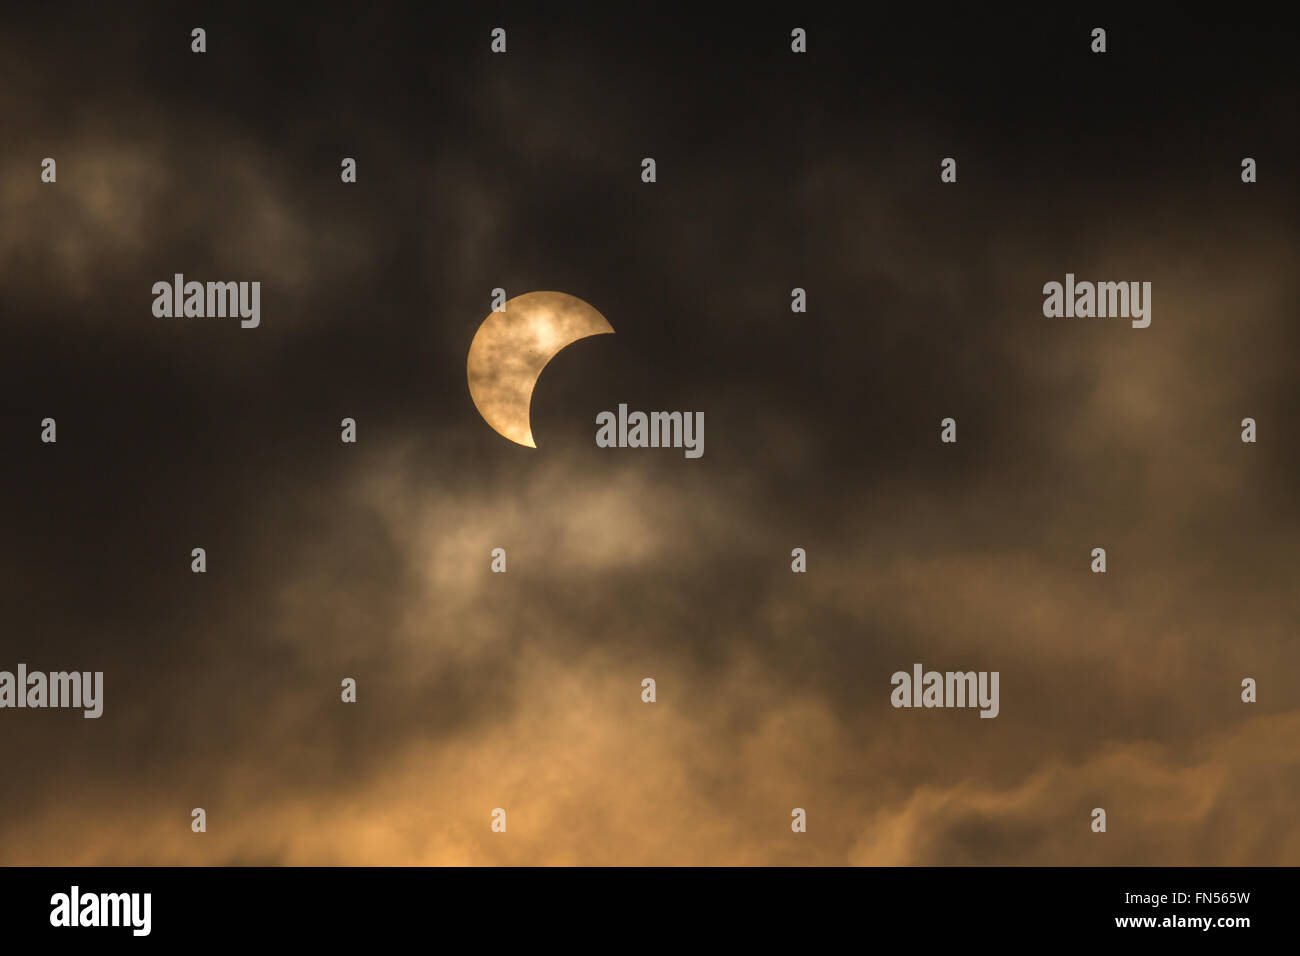 Solar eclipse on March 9, 2016 from Bangkok, Thailand - Stock Image